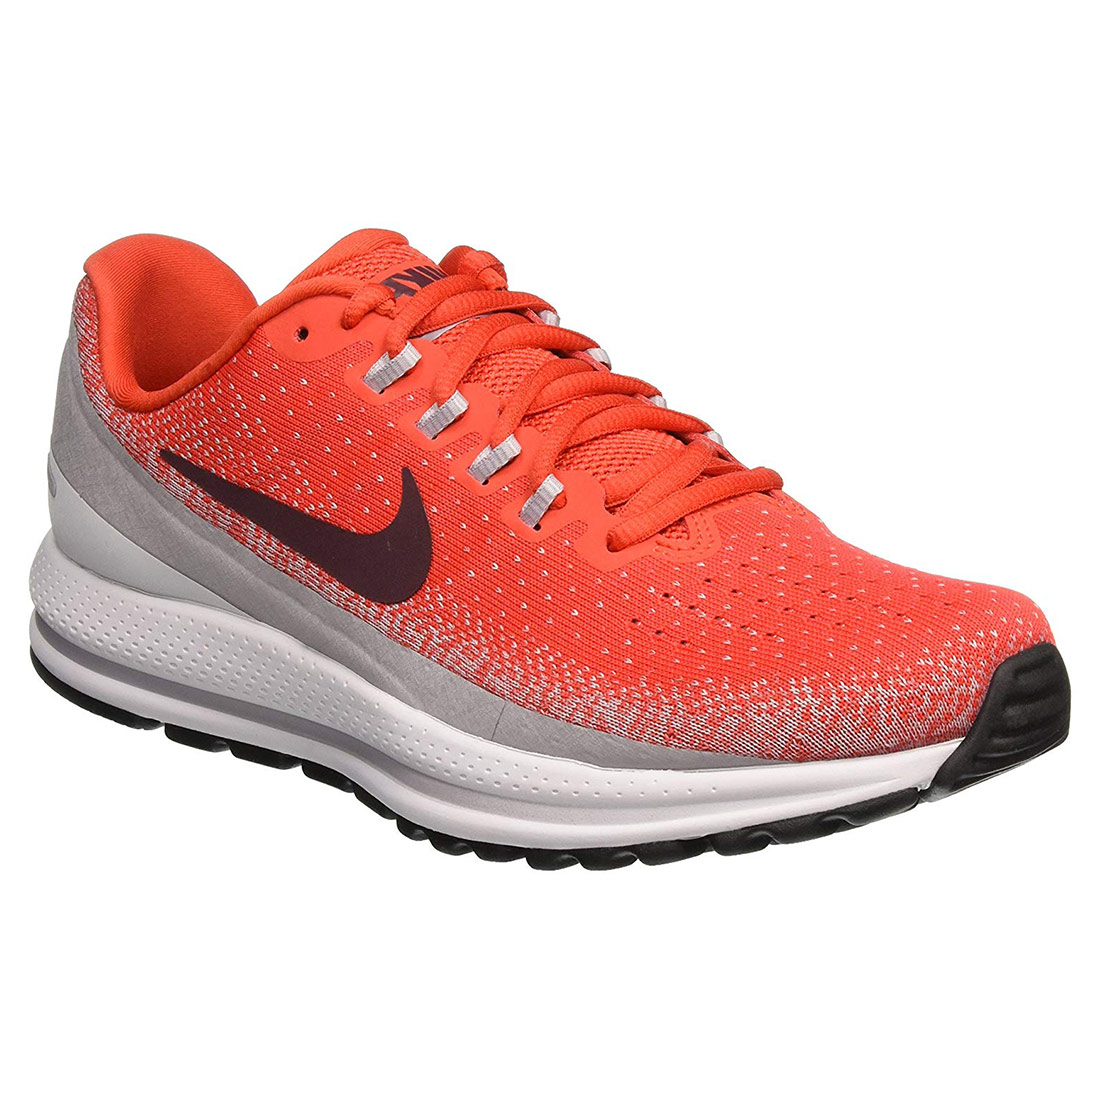 Nike Zoom Atlas Running Shoes